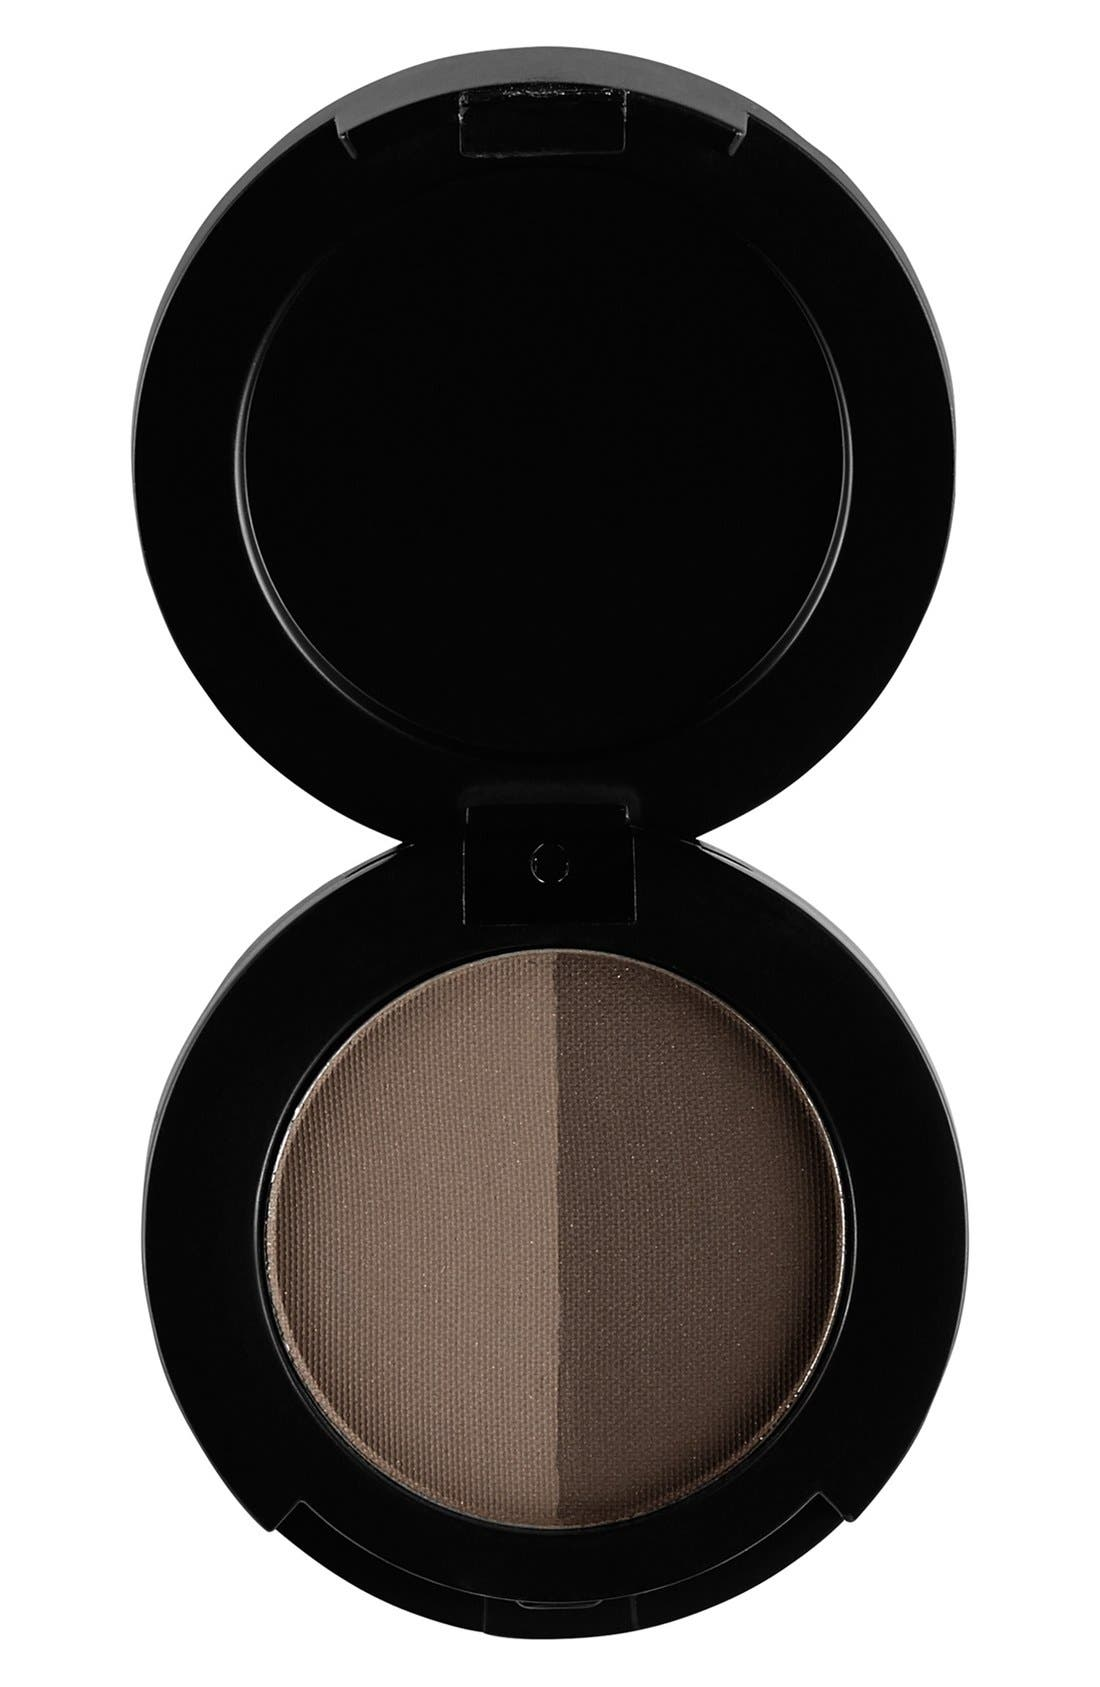 Brow Powder Duo,                             Main thumbnail 1, color,                             201